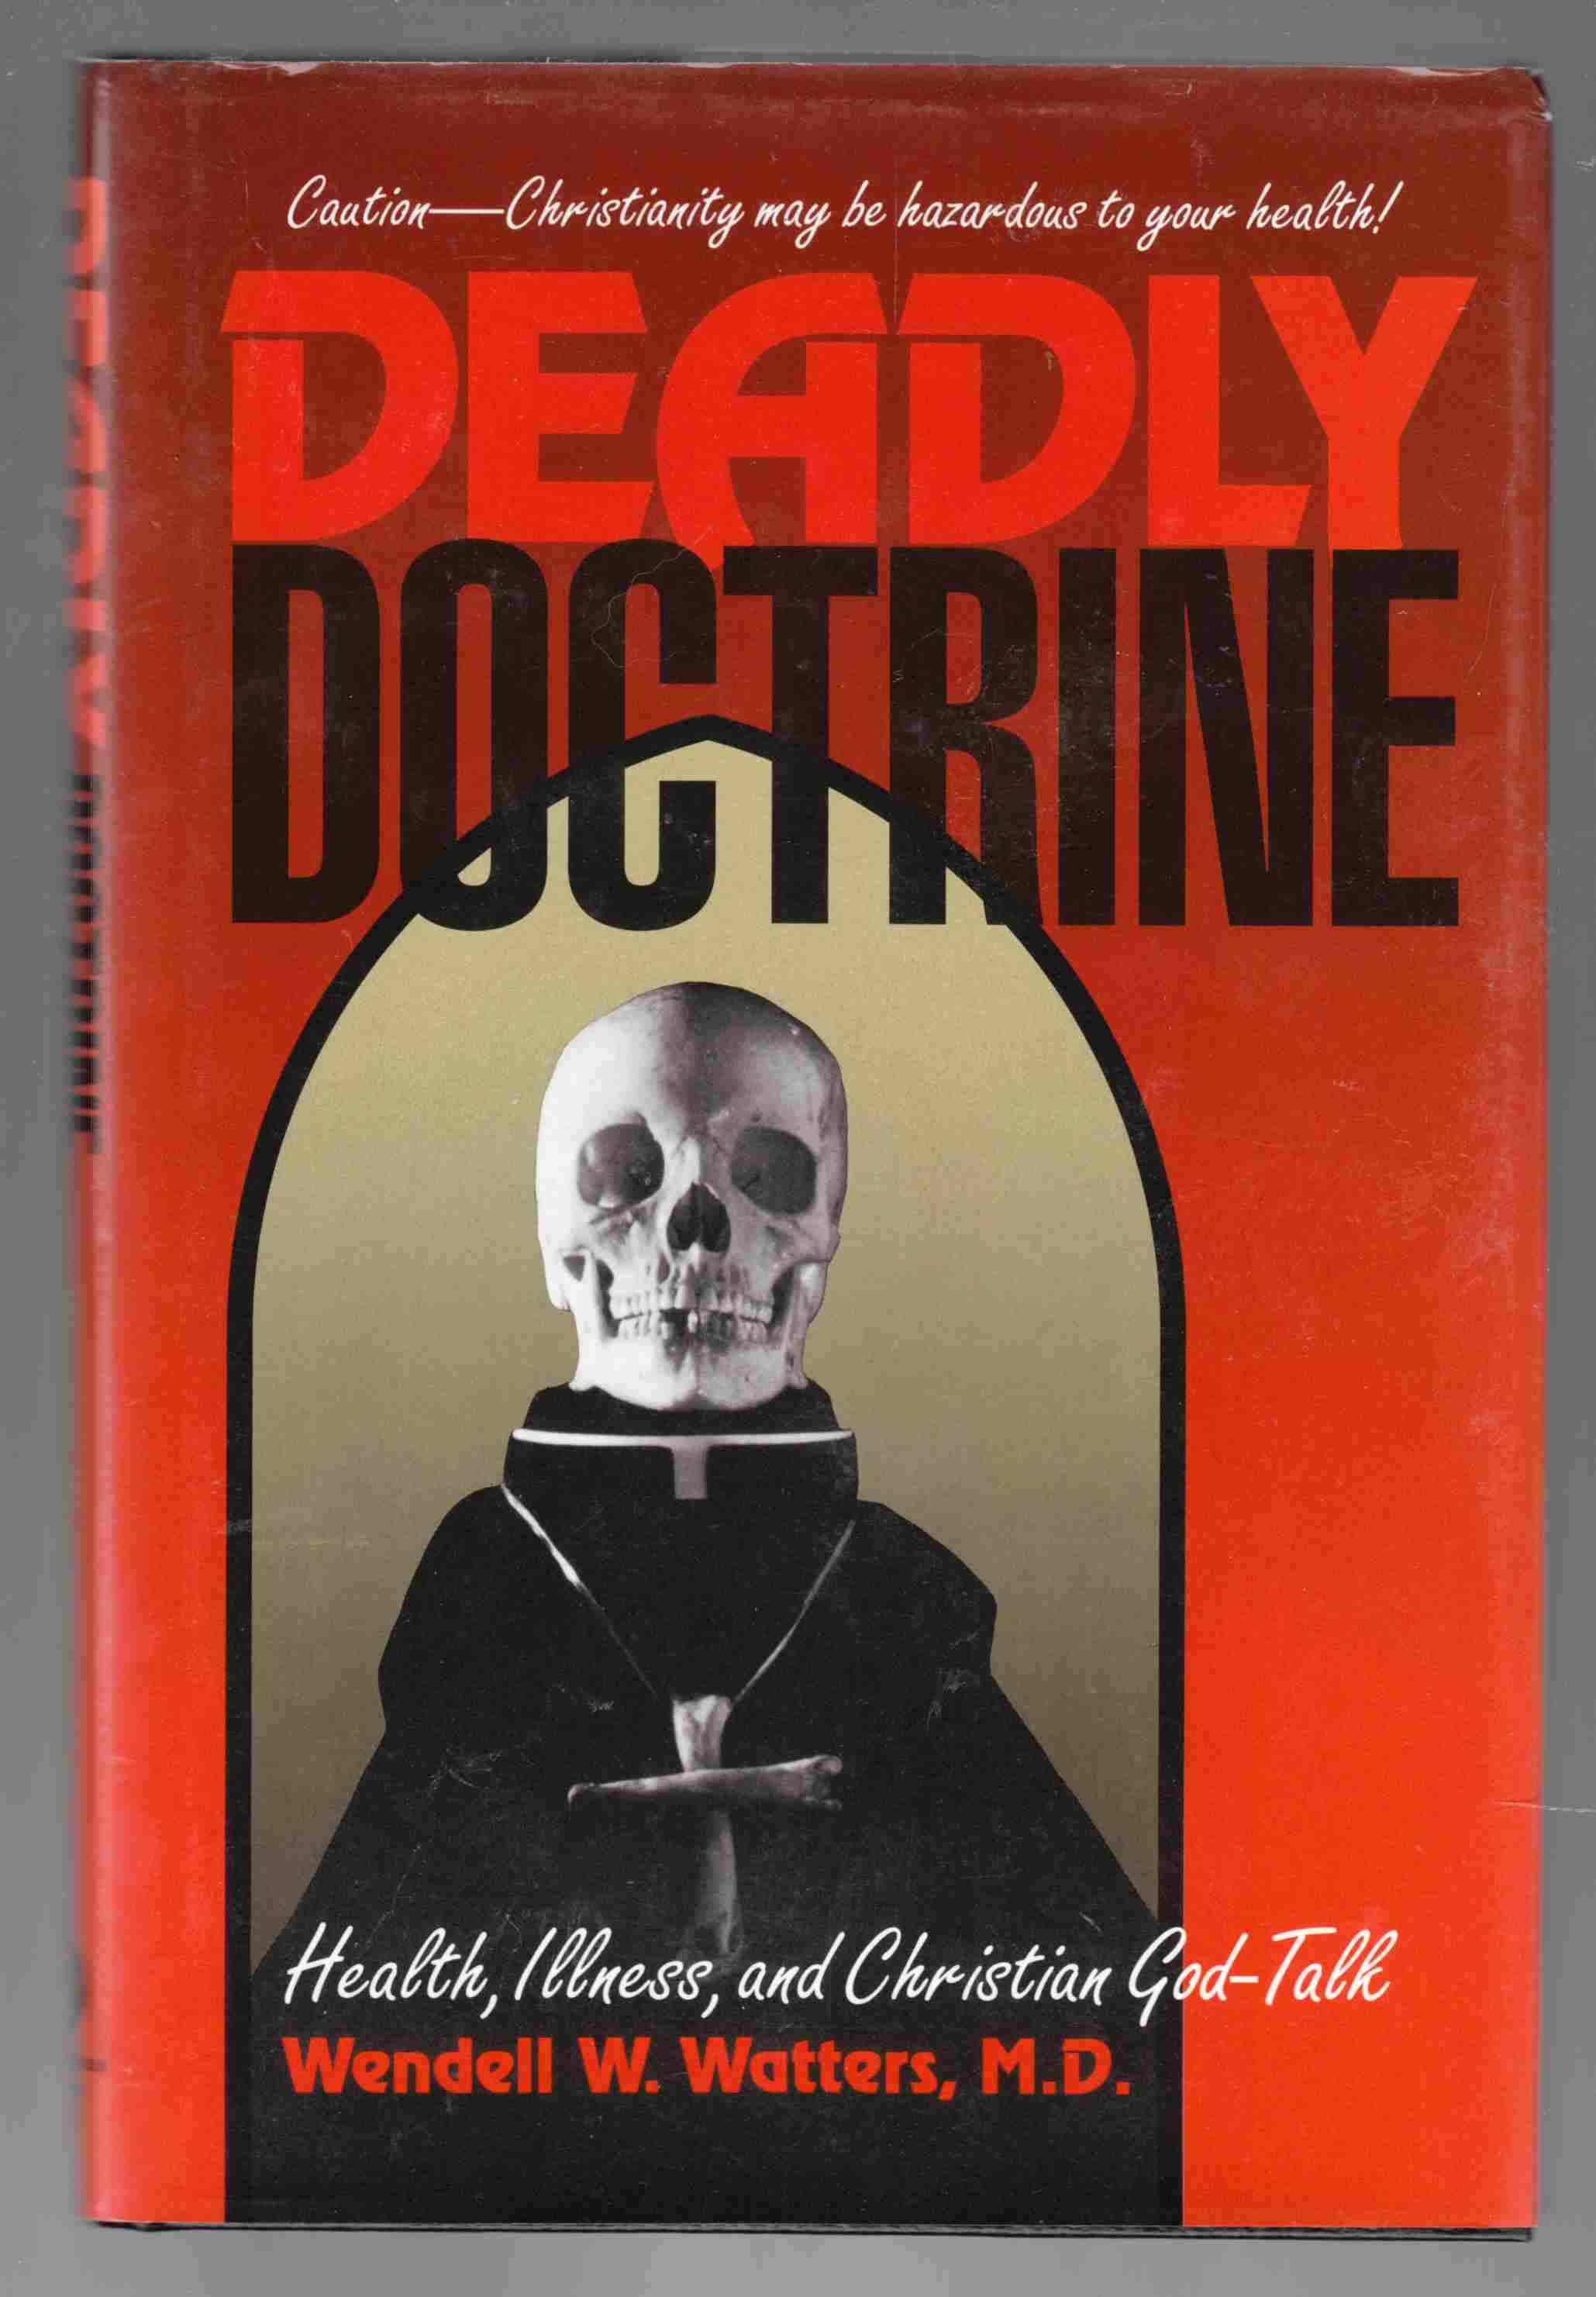 Image for Deadly Doctrine Health, Illness, and Christian God-Talk